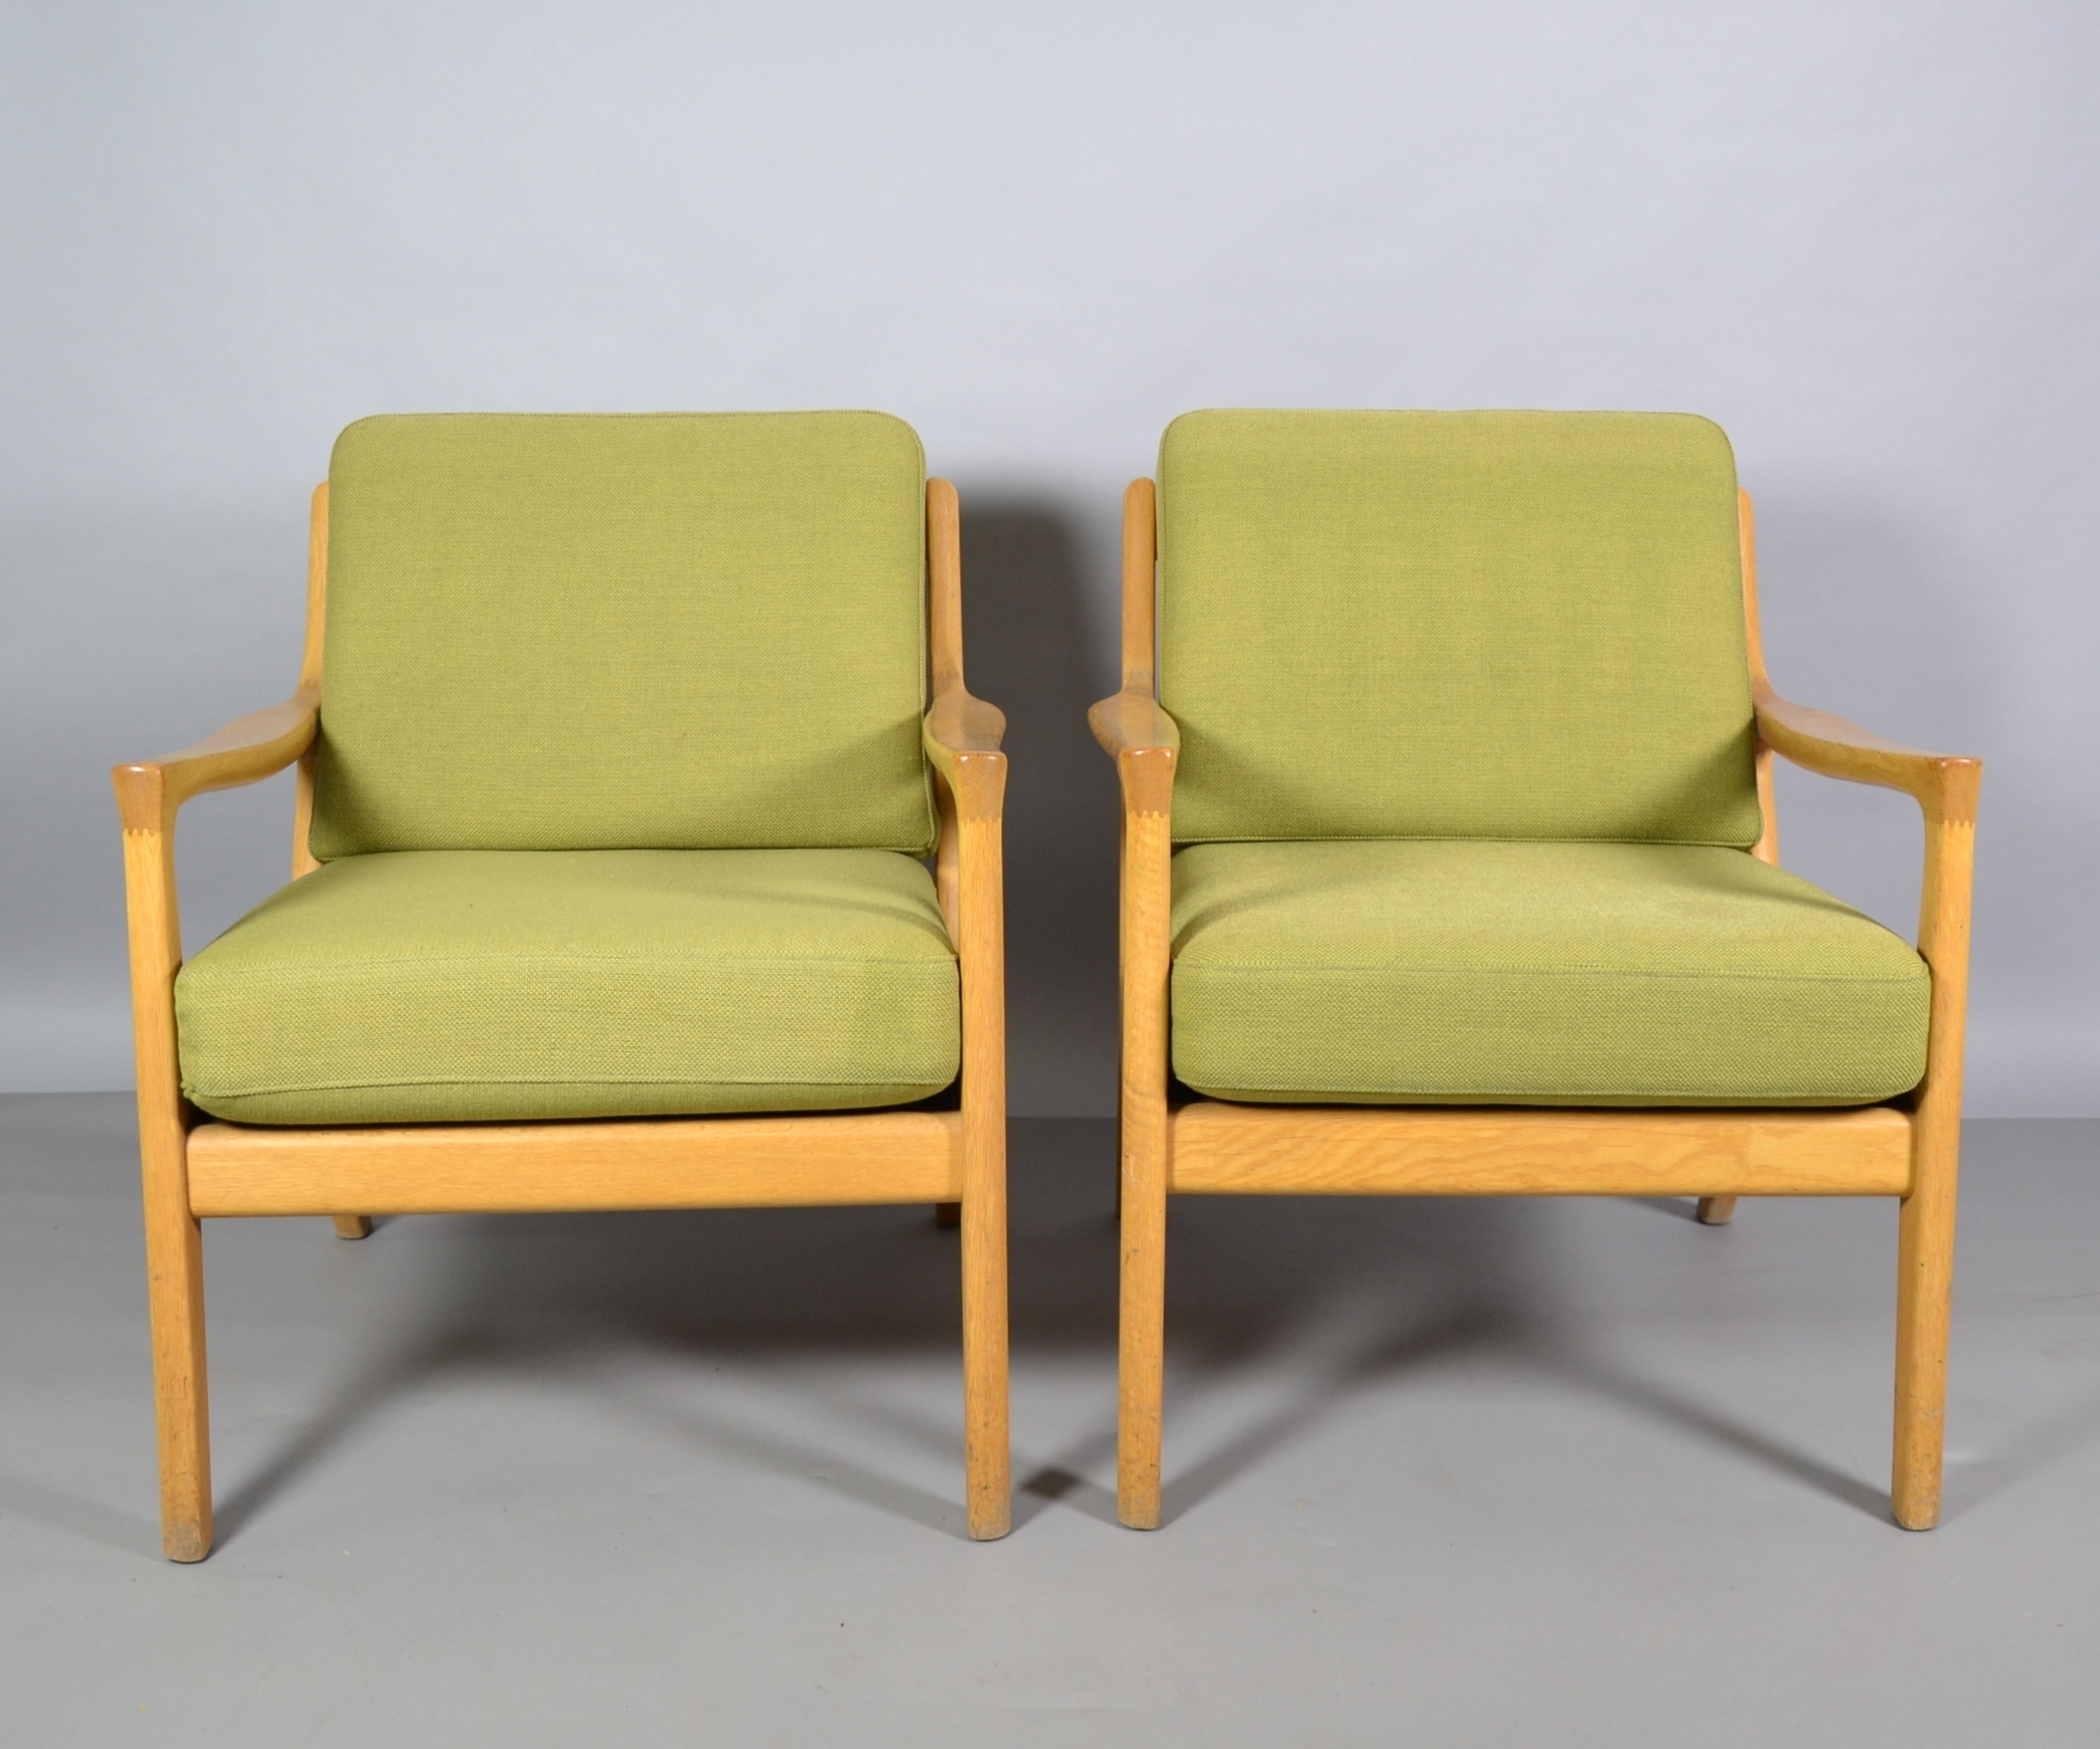 Dänische Sessel Zwei DÄnische Sessel Furniture Armchairs Chairs Auctionet